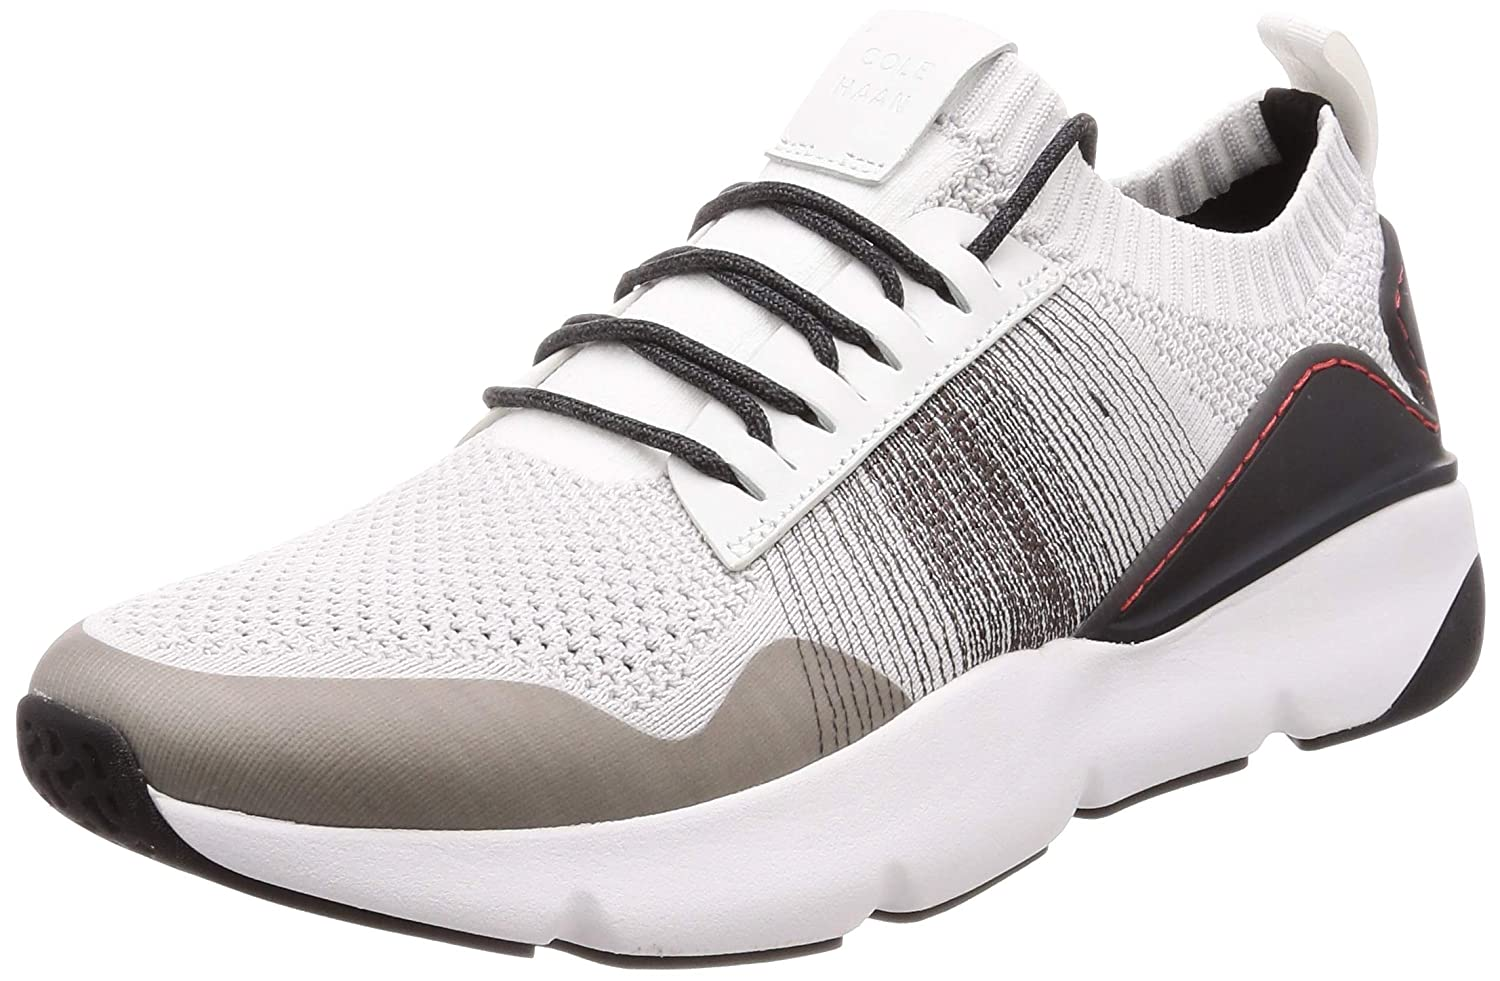 Optic White Nimbus Cloud Pavement Ivory Cole Haan Men's Zerogrand All Day Trainer with Stitchlite